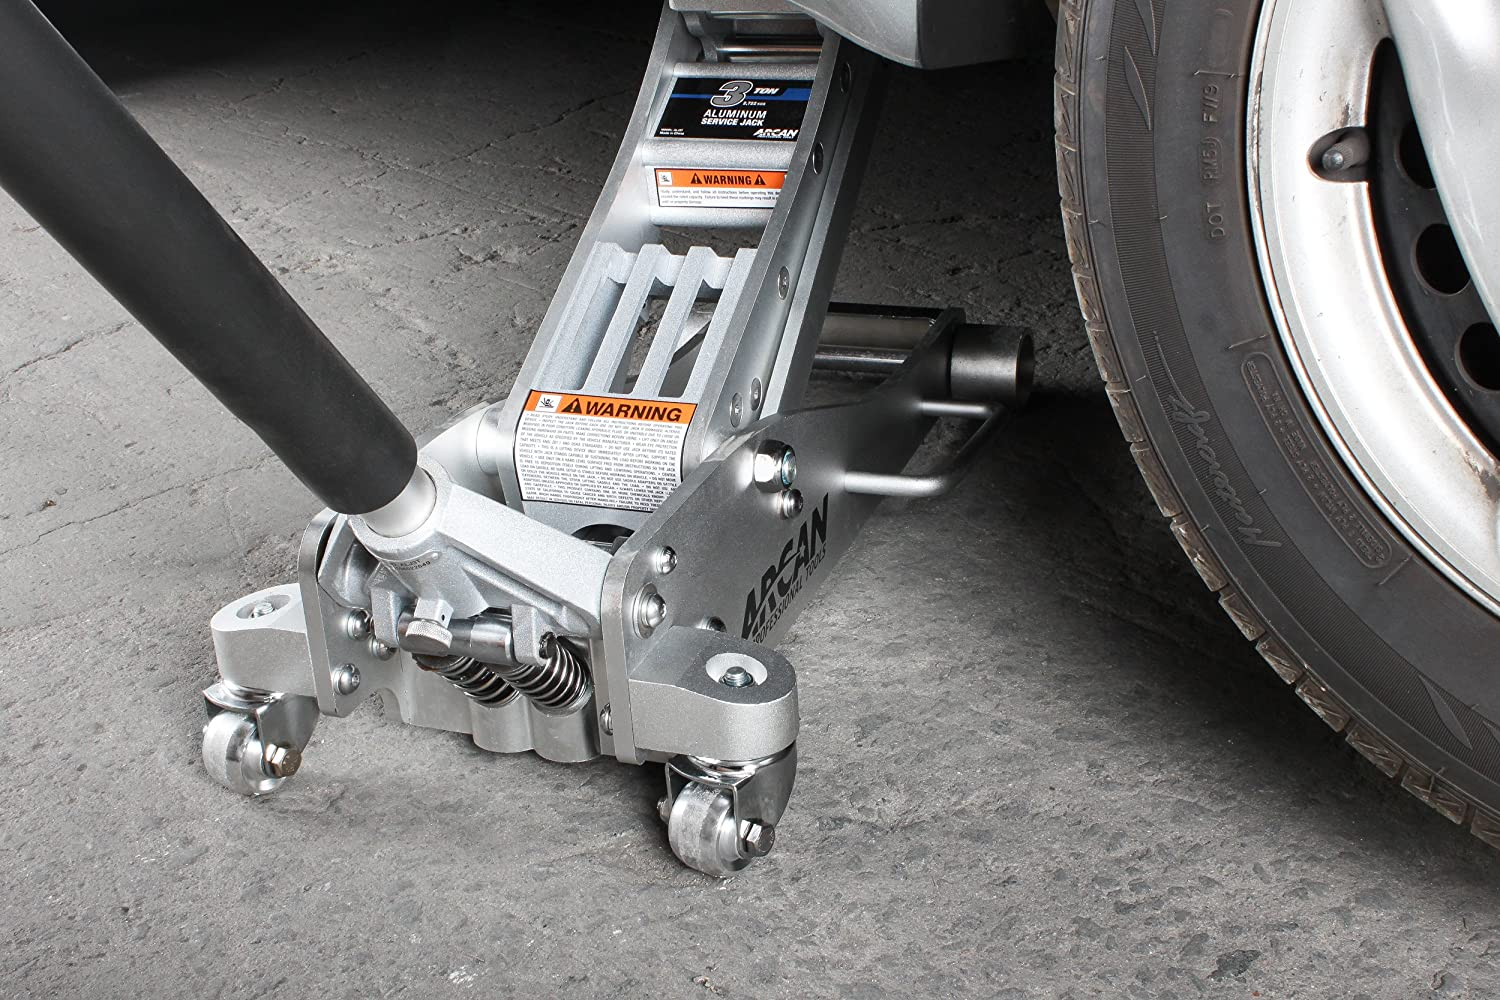 Aluminum Floor Jack Bypass and Overload Valves Dual Pump Pistons 3 Ton Capacity Reinforced Lift Arms 2 Piece Handle Vehicle Protection Lightweight Side Mount Arcan ALJ3T Meets ASME PASE-2014 Safety Standard